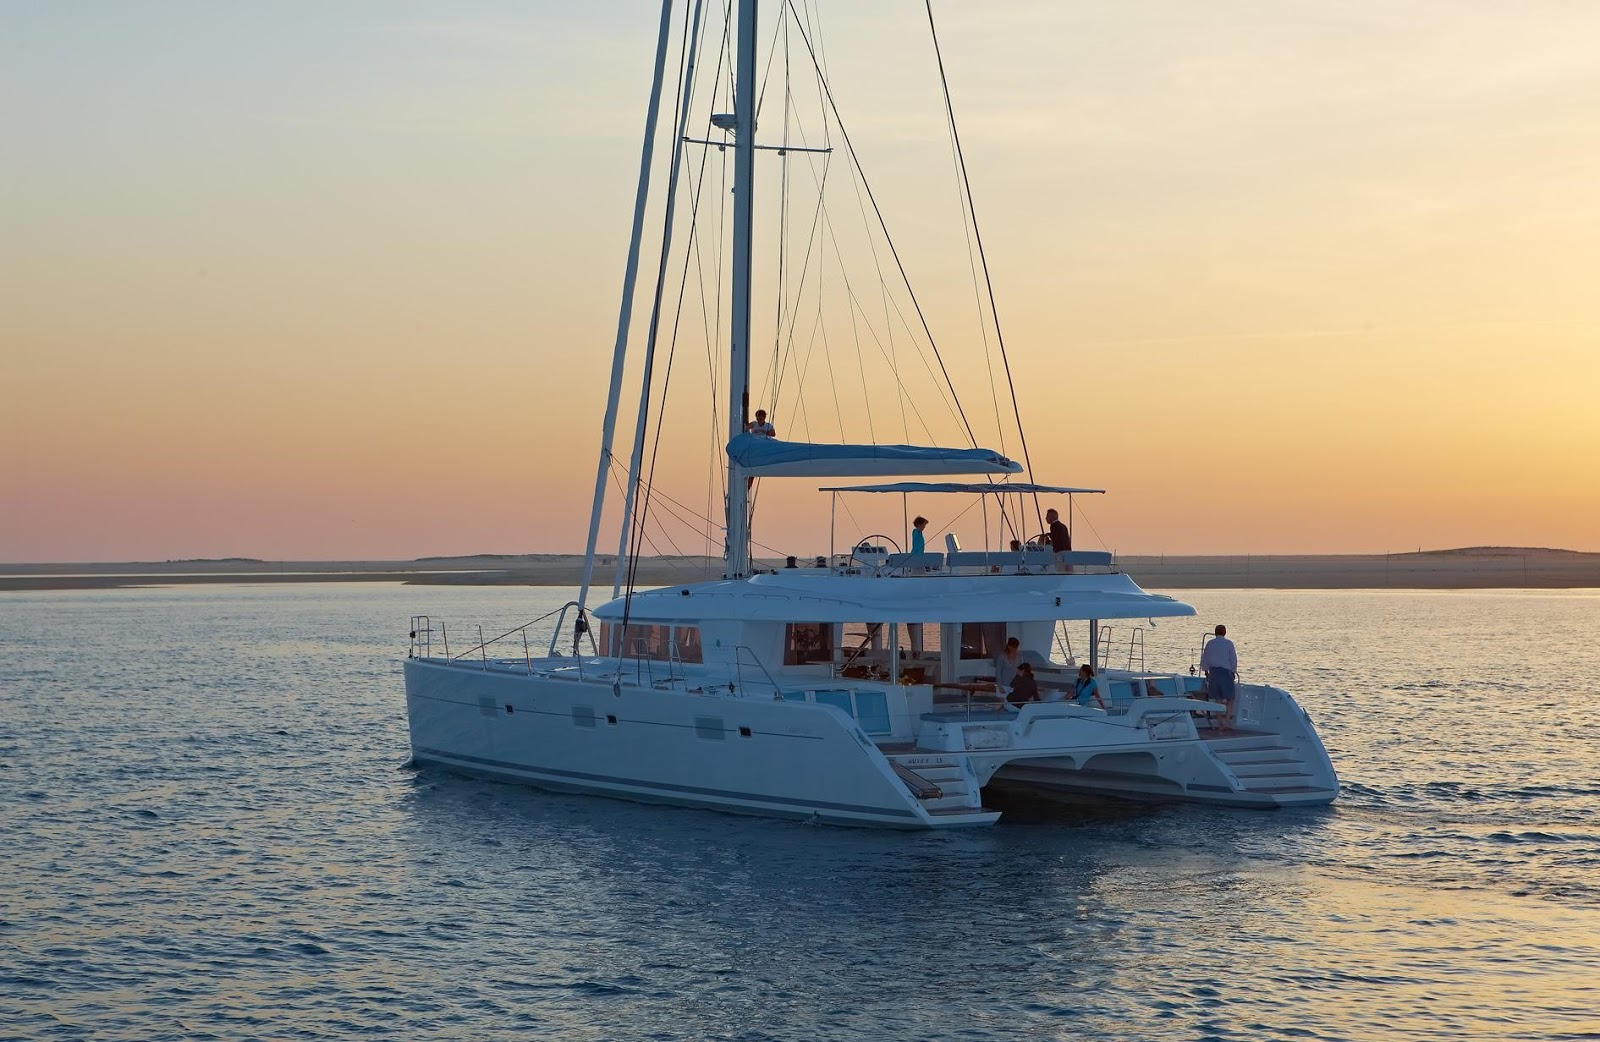 alquiler de catamaranes en ibiza. alquiler catamaranes ibiza. alquiler de catamaranes en ibiza. alquiler catamaranes ibiza. alquilar catamaranes en ibiza. catamaranes de alquiler en ibiza